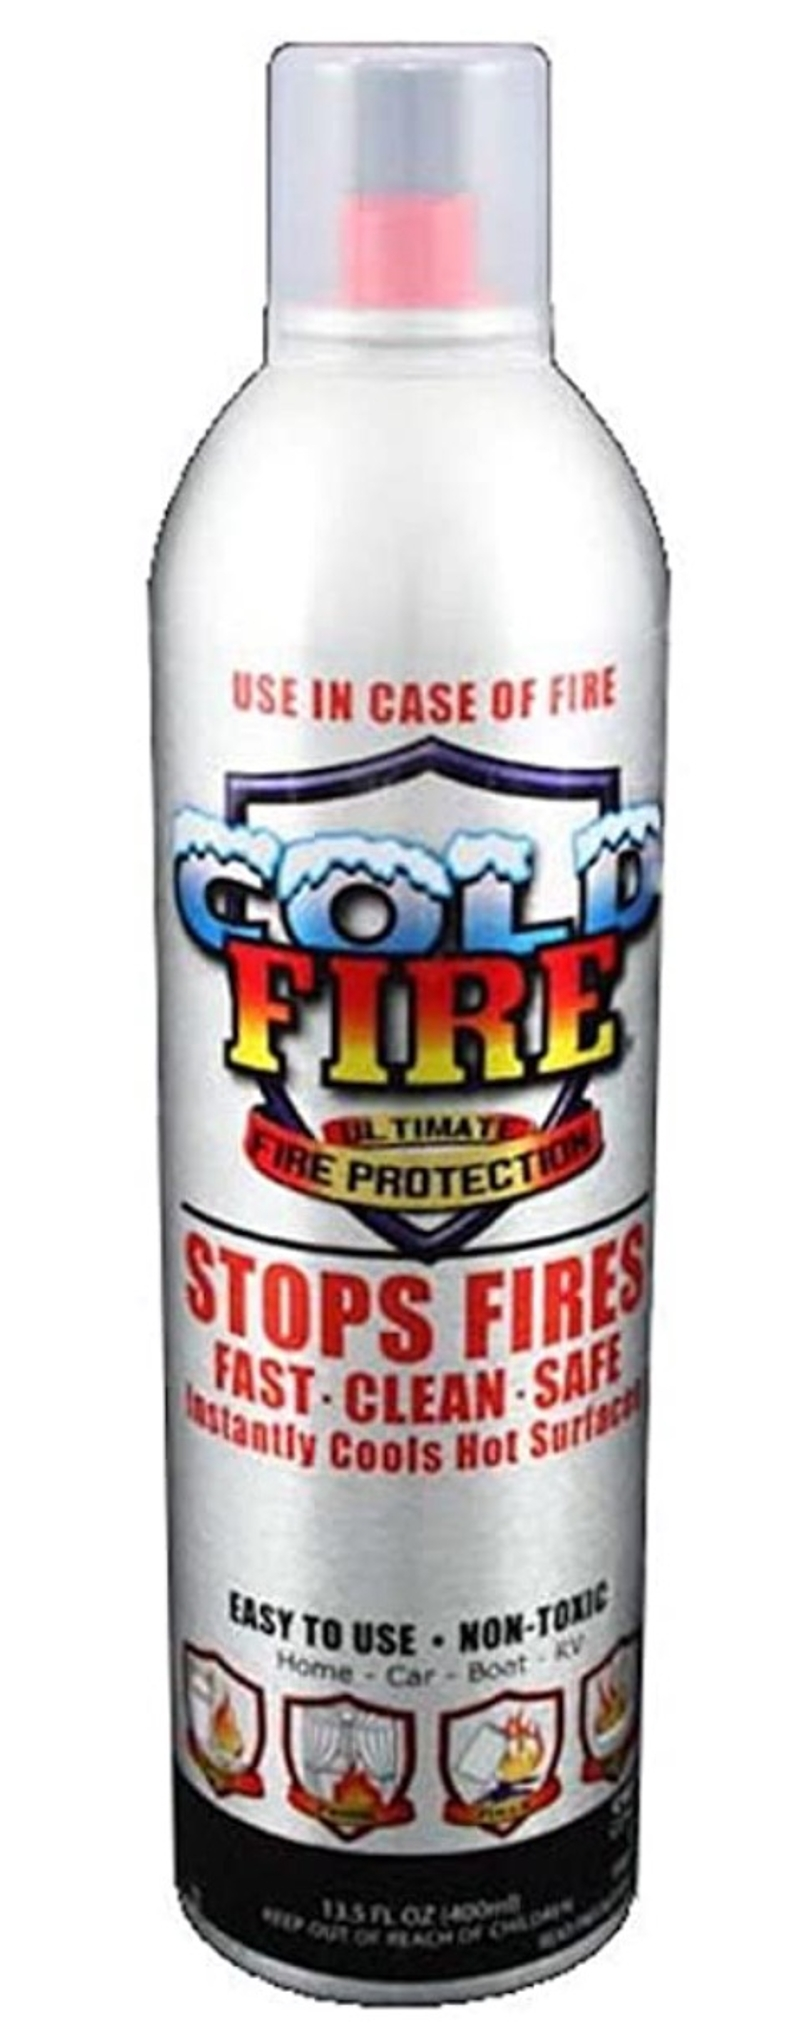 Cold Fire 13 oz. Fire Extinguisher